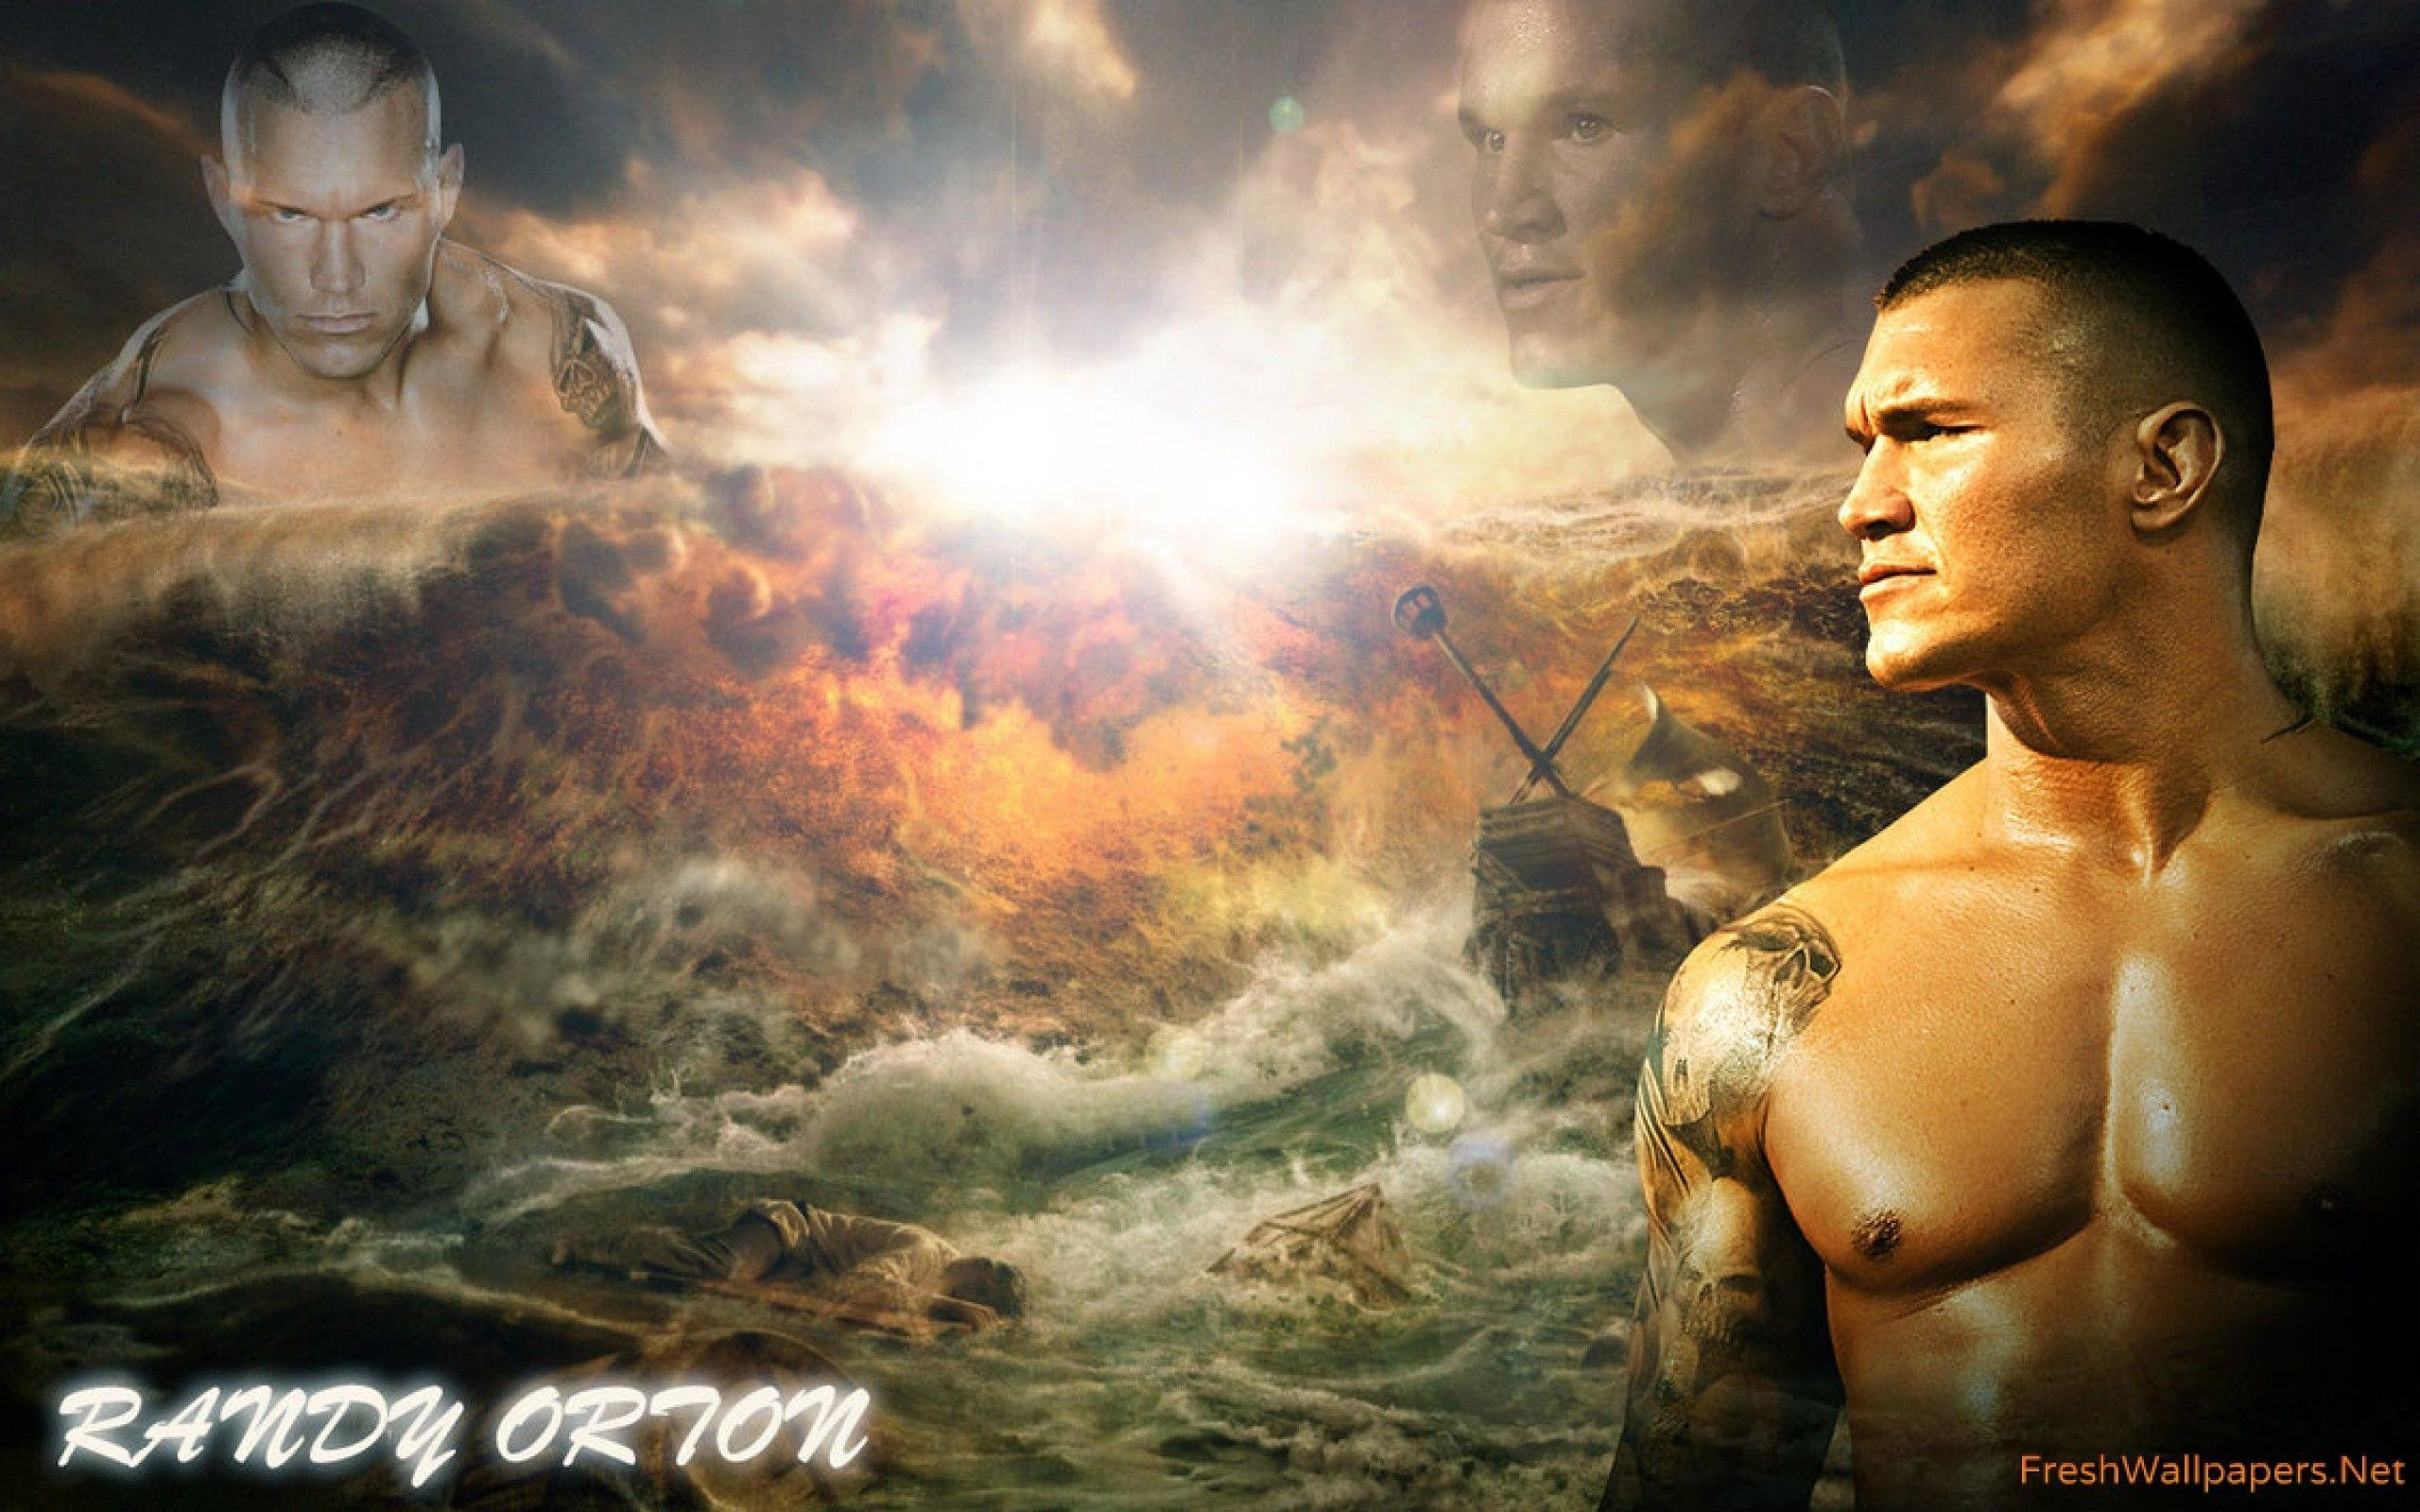 Randy Orton 2018 Wallpaper Viper (53+ images)